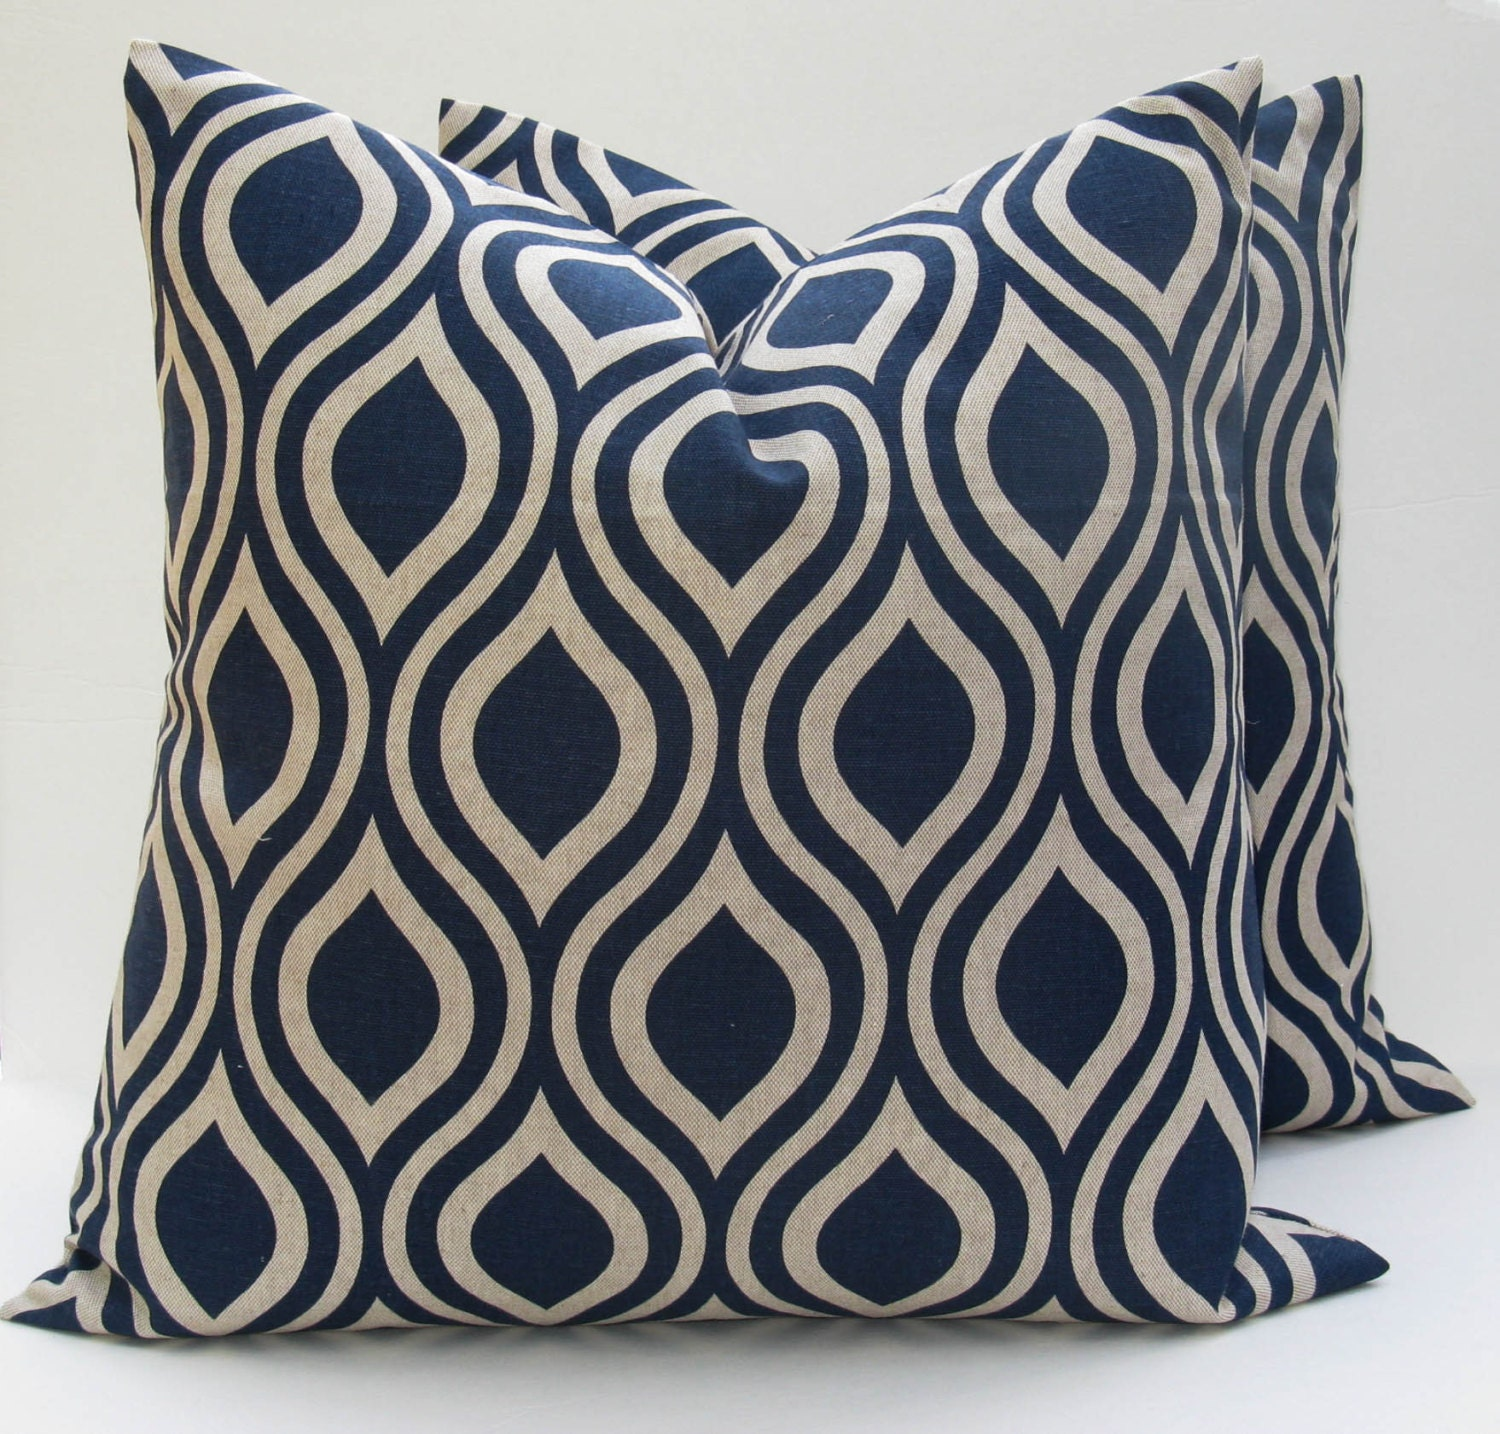 Throw Pillow Set of Two Covers.Blue Pillow .Blue Tan Pillow 20 x 20 covers printed fabric on front and back 20x20 Throw Pillow Covers - EastAndNest